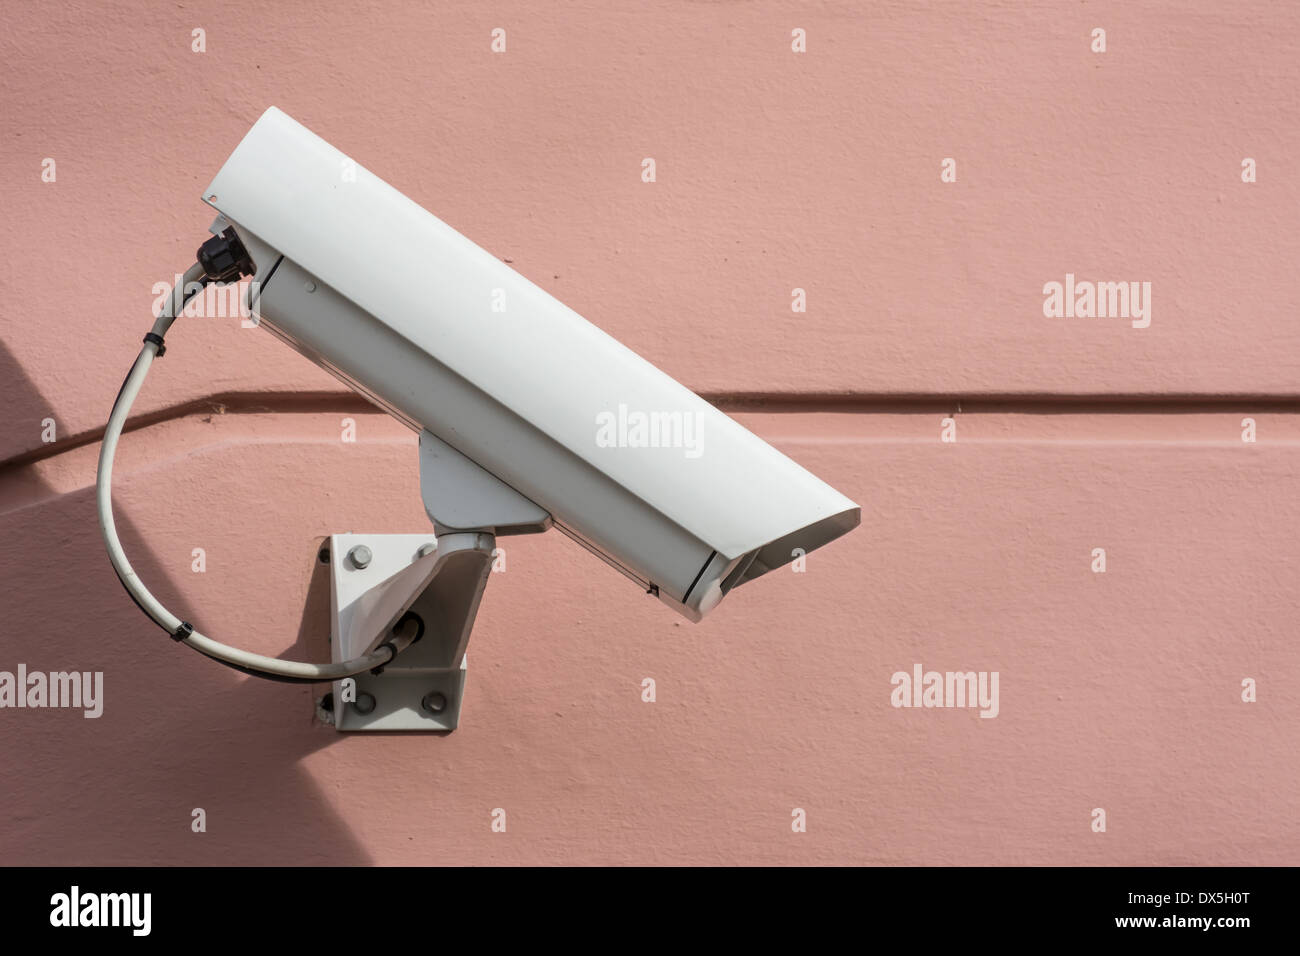 Security with a video surveillance camera Stock Photo